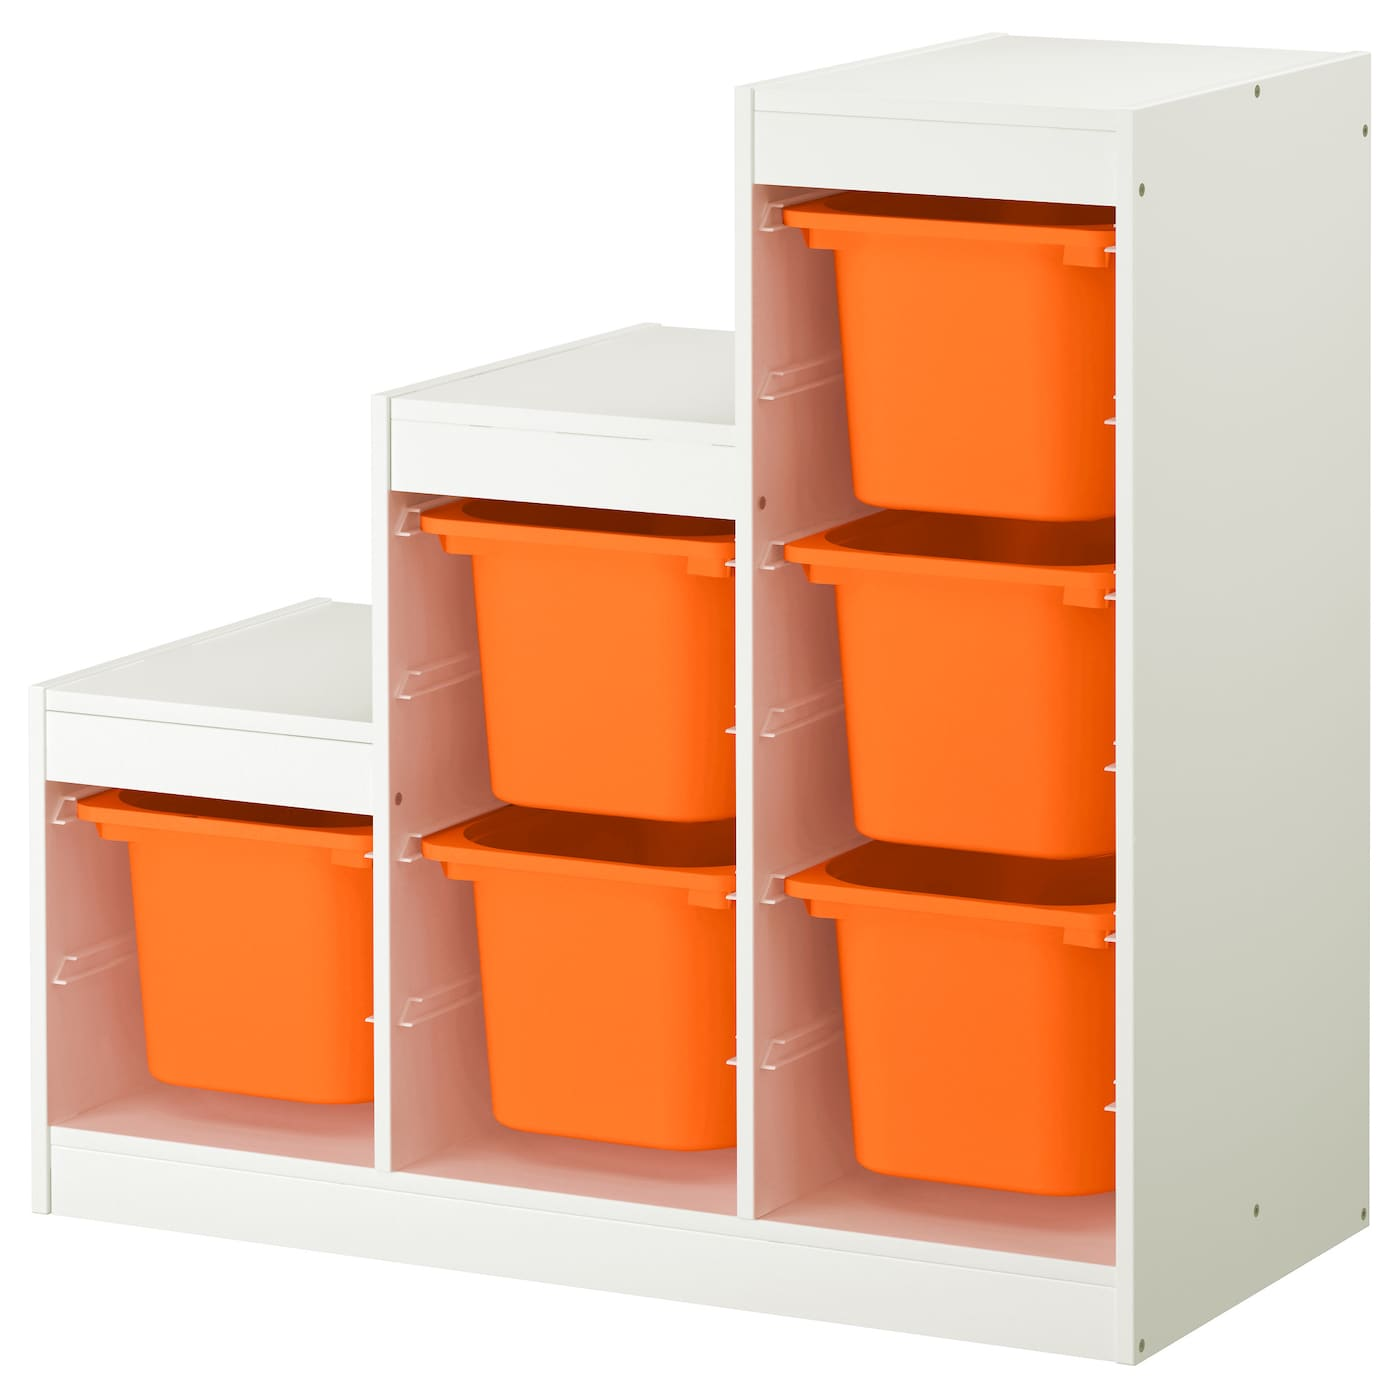 trofast storage combination white orange 99 x 44 x 94 cm ikea. Black Bedroom Furniture Sets. Home Design Ideas